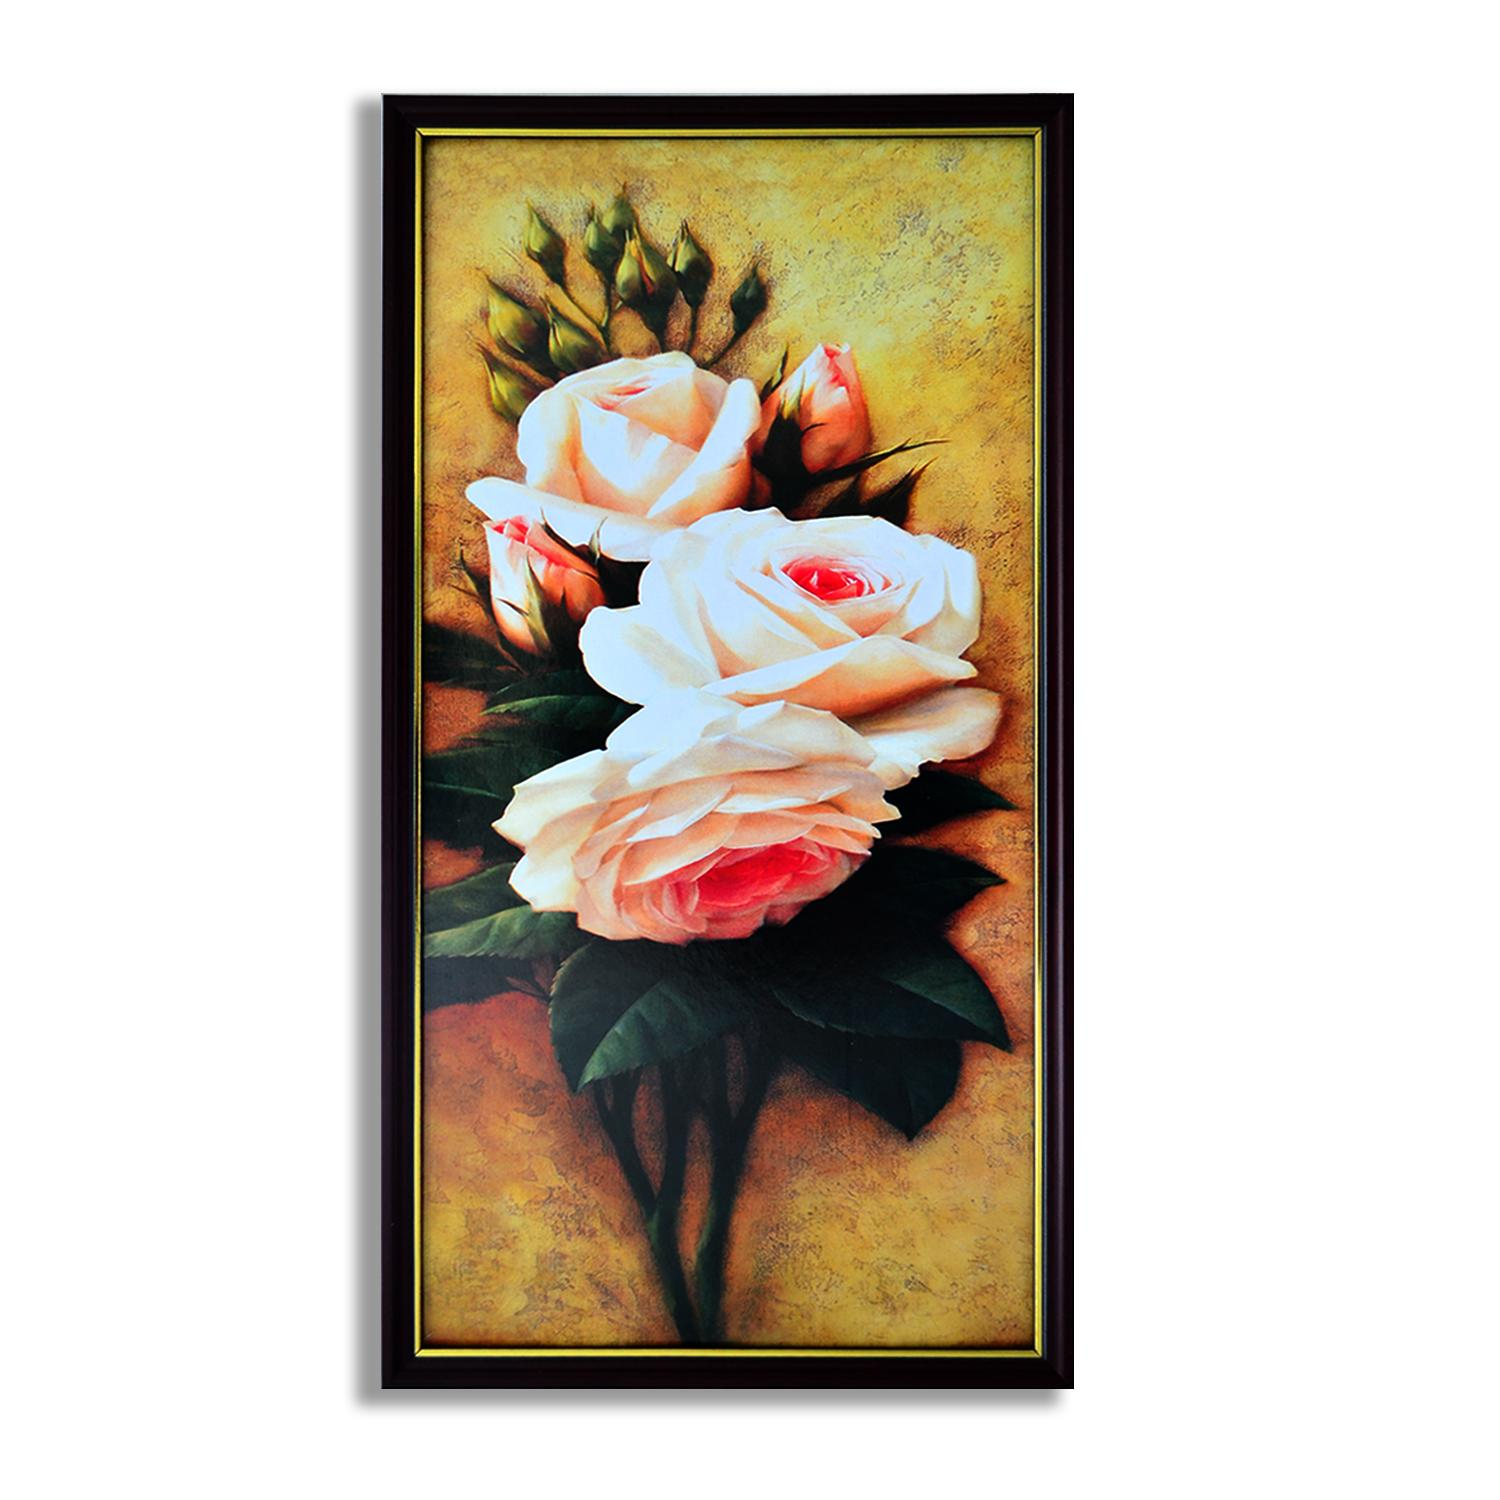 Picture Frames For Sale Photo Prices Brands Review In Circuitboardpictureframe4x6customjpg Frame Art Flower Painting Home Room Wall Decor Parkson